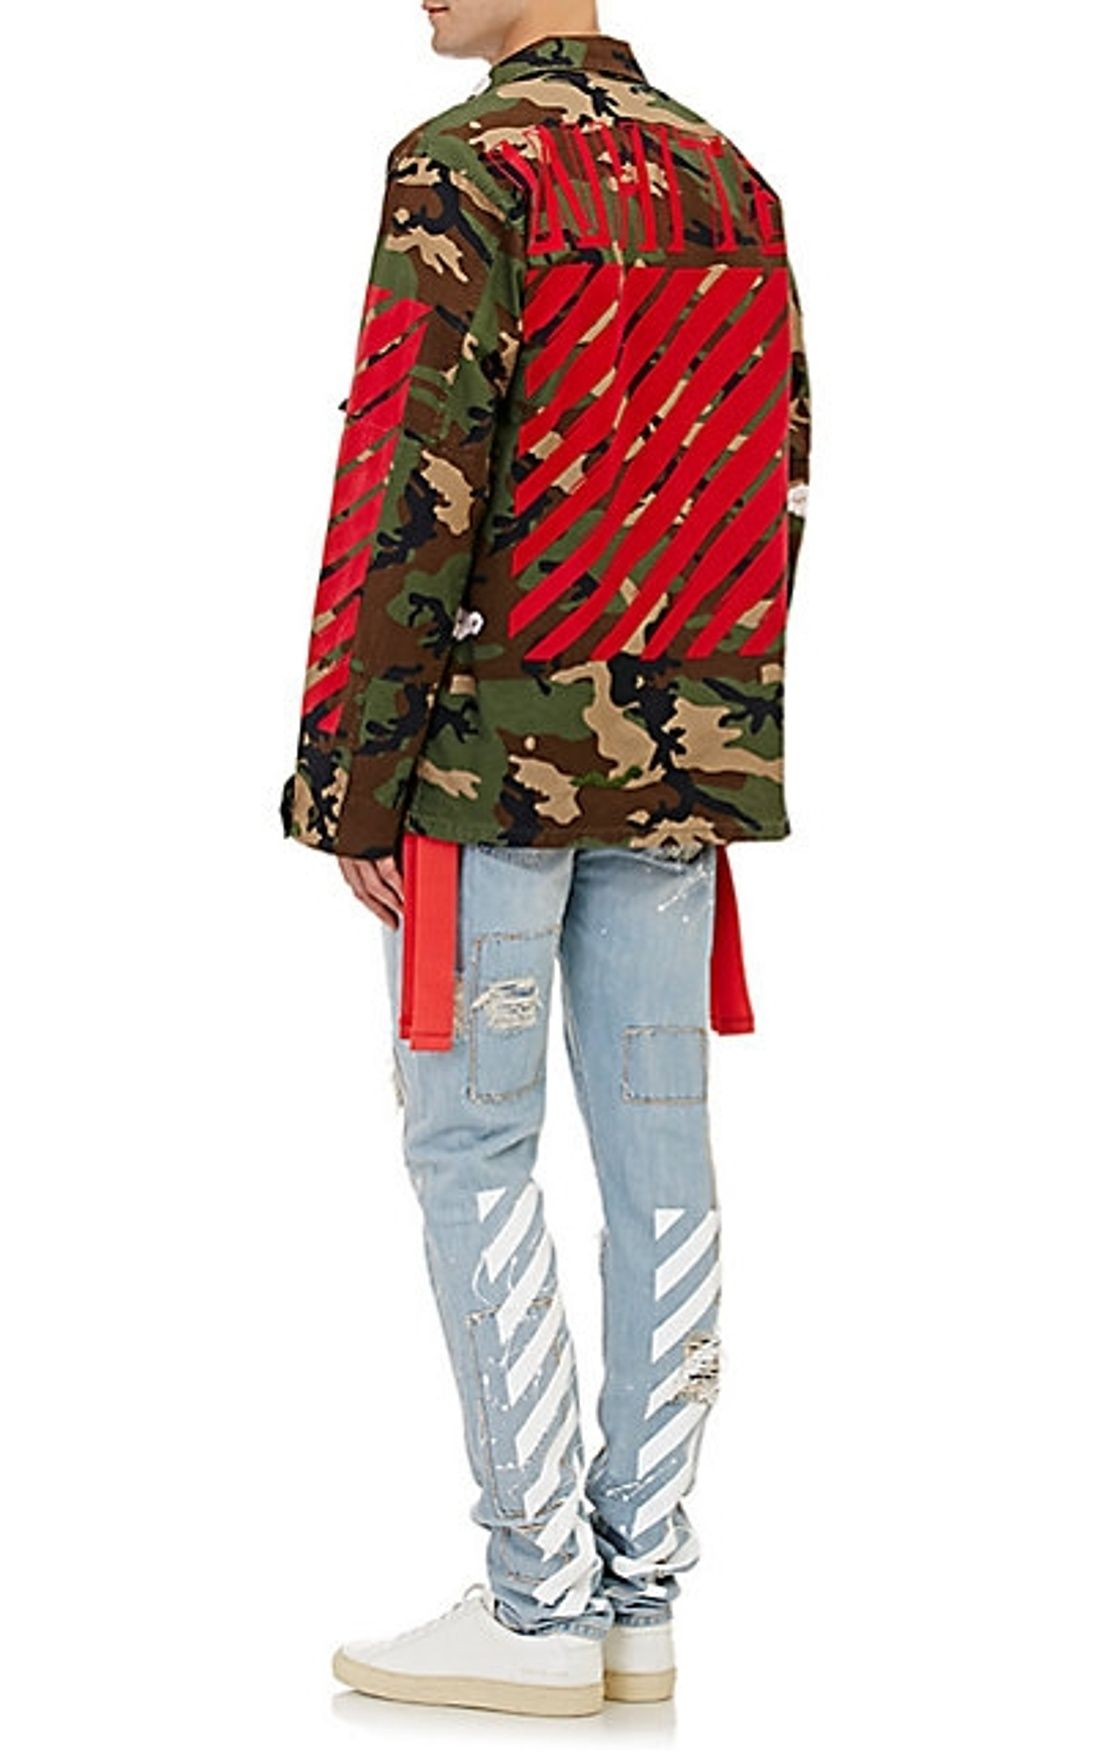 cfce32c44b9f8 Off White Embroidered Camo Field Jacket Size L $1000 - Grailed ...